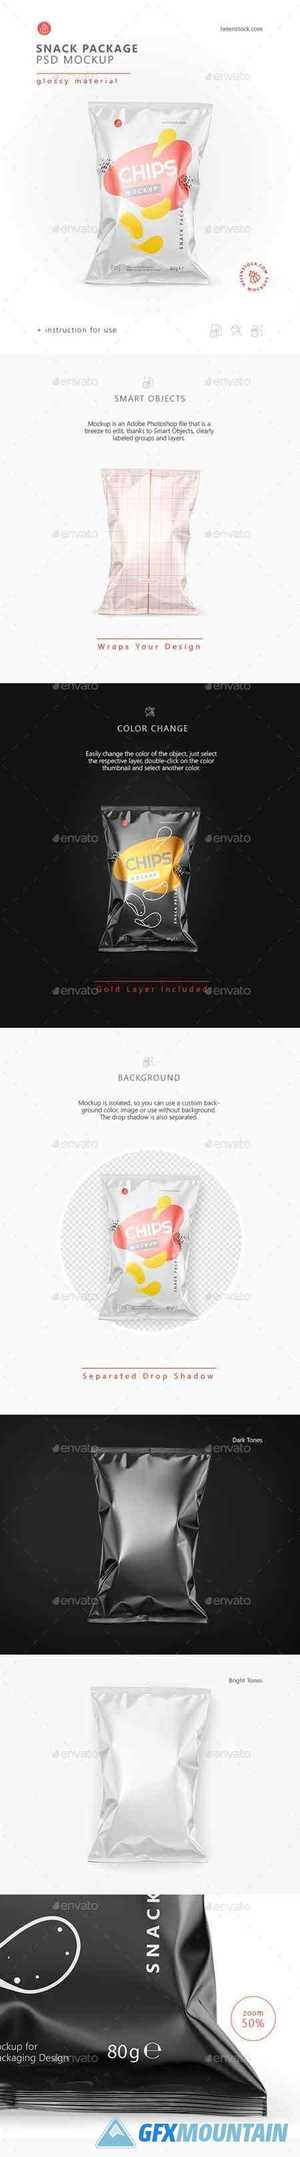 Glossy Snack Package Mockup - Front View 26538212